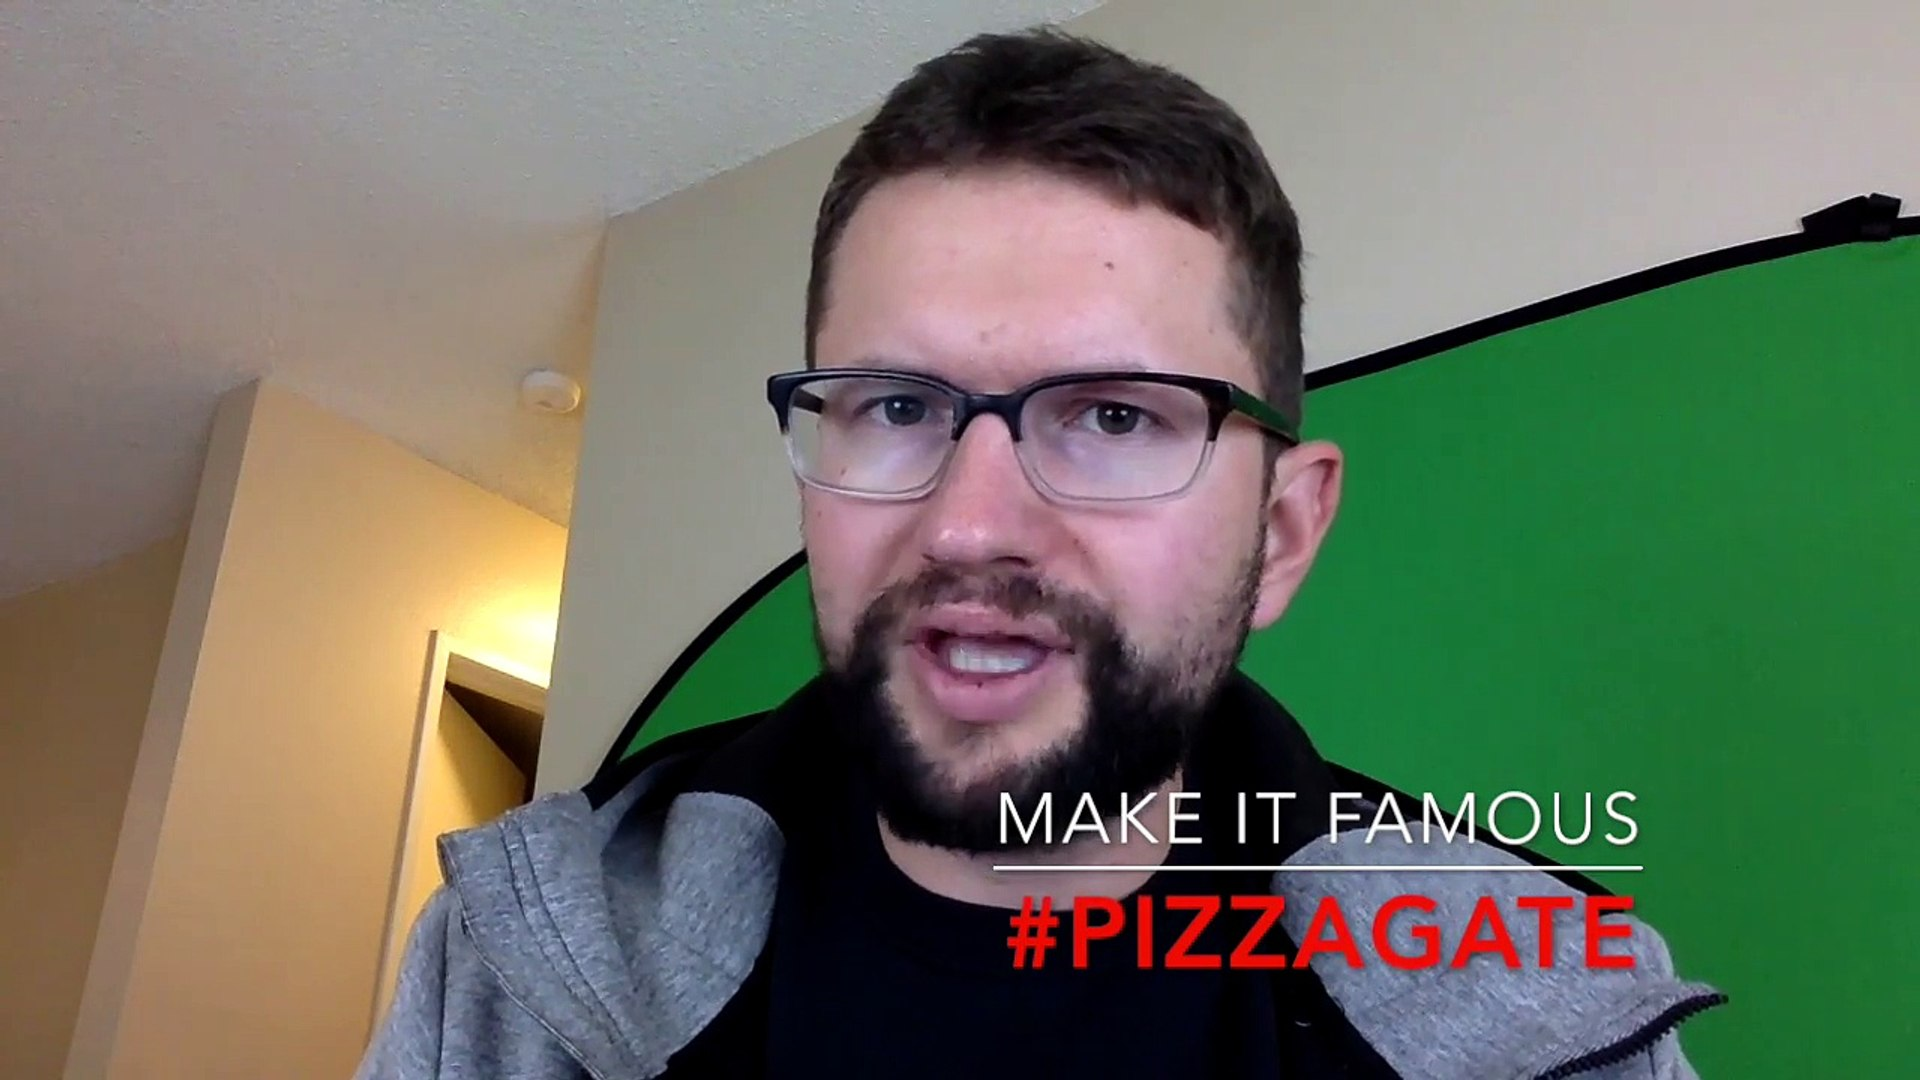 Donald Trump MUST Act: Hillarys PizzaGate Is Real